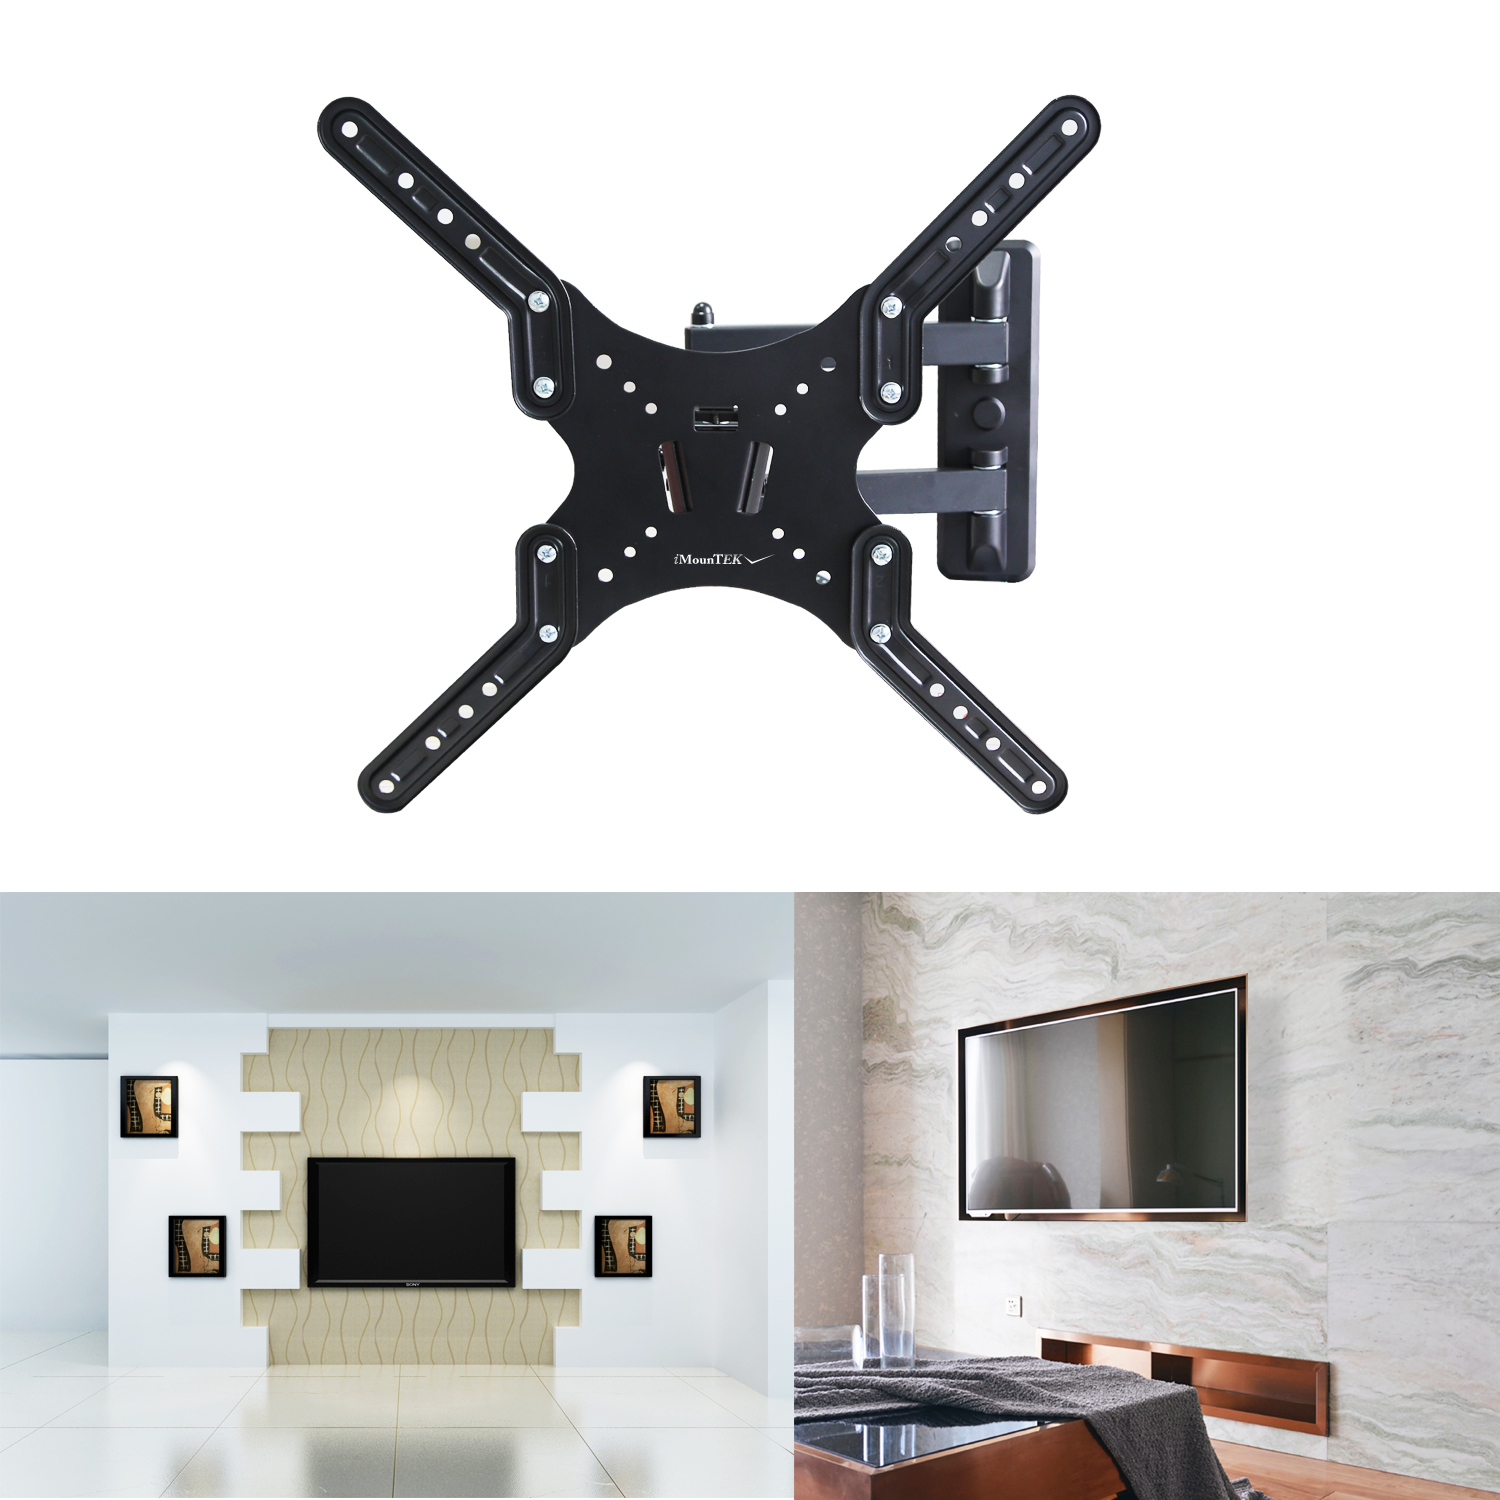 "iMounTEK Tilting TV Wall Mount Bracket For 23"" TO 55"" LED/LCD/OLED/Plasma Flat Screen TV. Full Motion Swivel Articulating Dual Arms, 66 LBS Hold- Sony/LG/Samsung/Panasonic/Vizio/Toshiba"